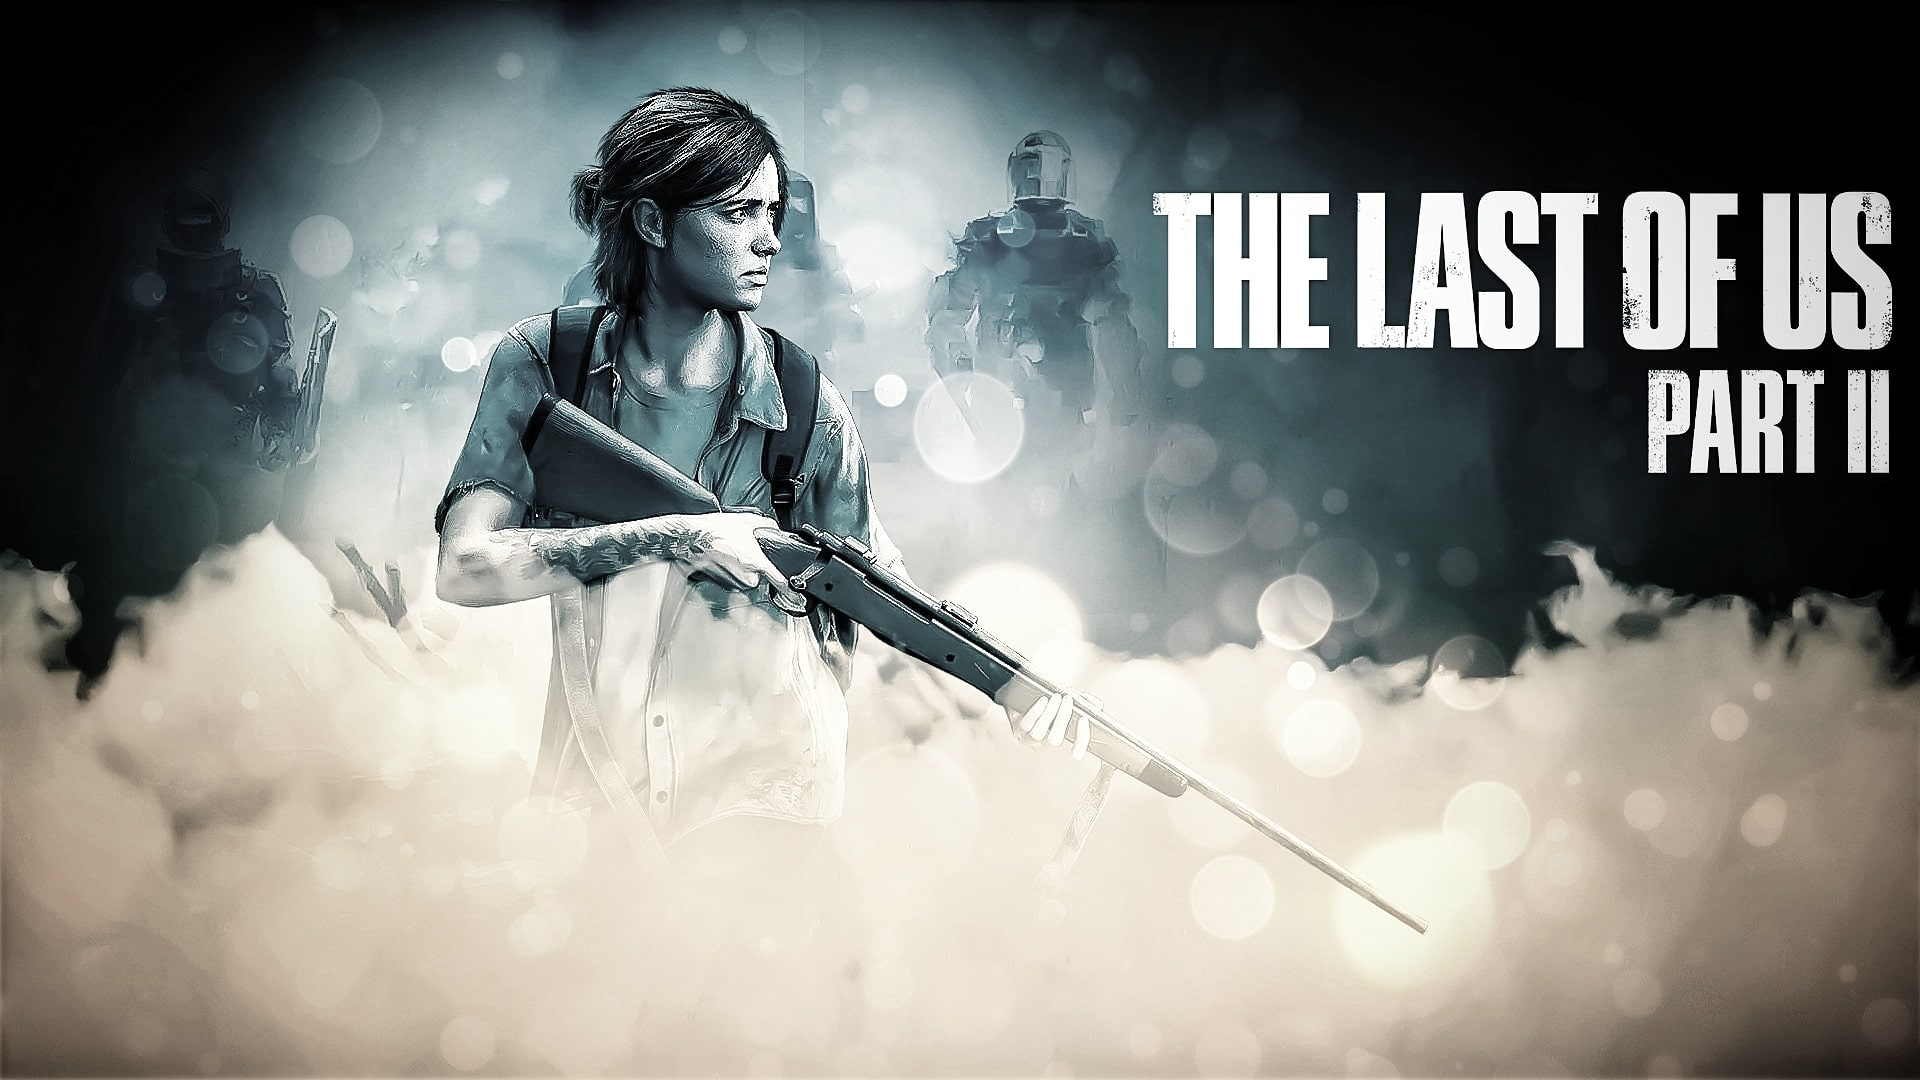 The Last Of Us Part 2 Hd Wallpapers 7wallpapers Net